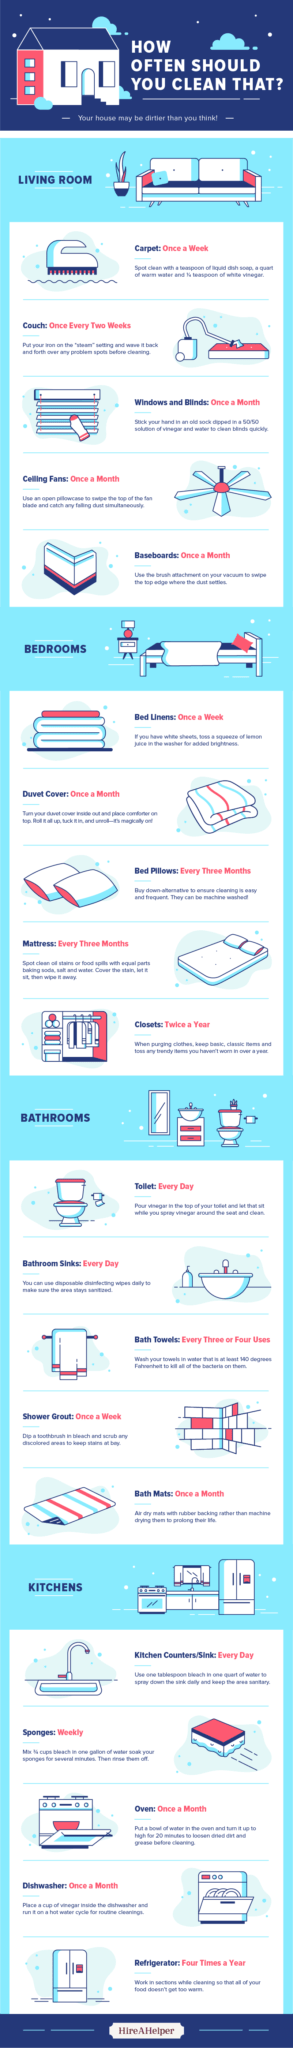 Great room cleaning checklist for when and how often you should clean stuff in your house! So handy to have a cleaning schedule for your home! #cleaning #springcleaning #deepcleaning #cleaninghacks